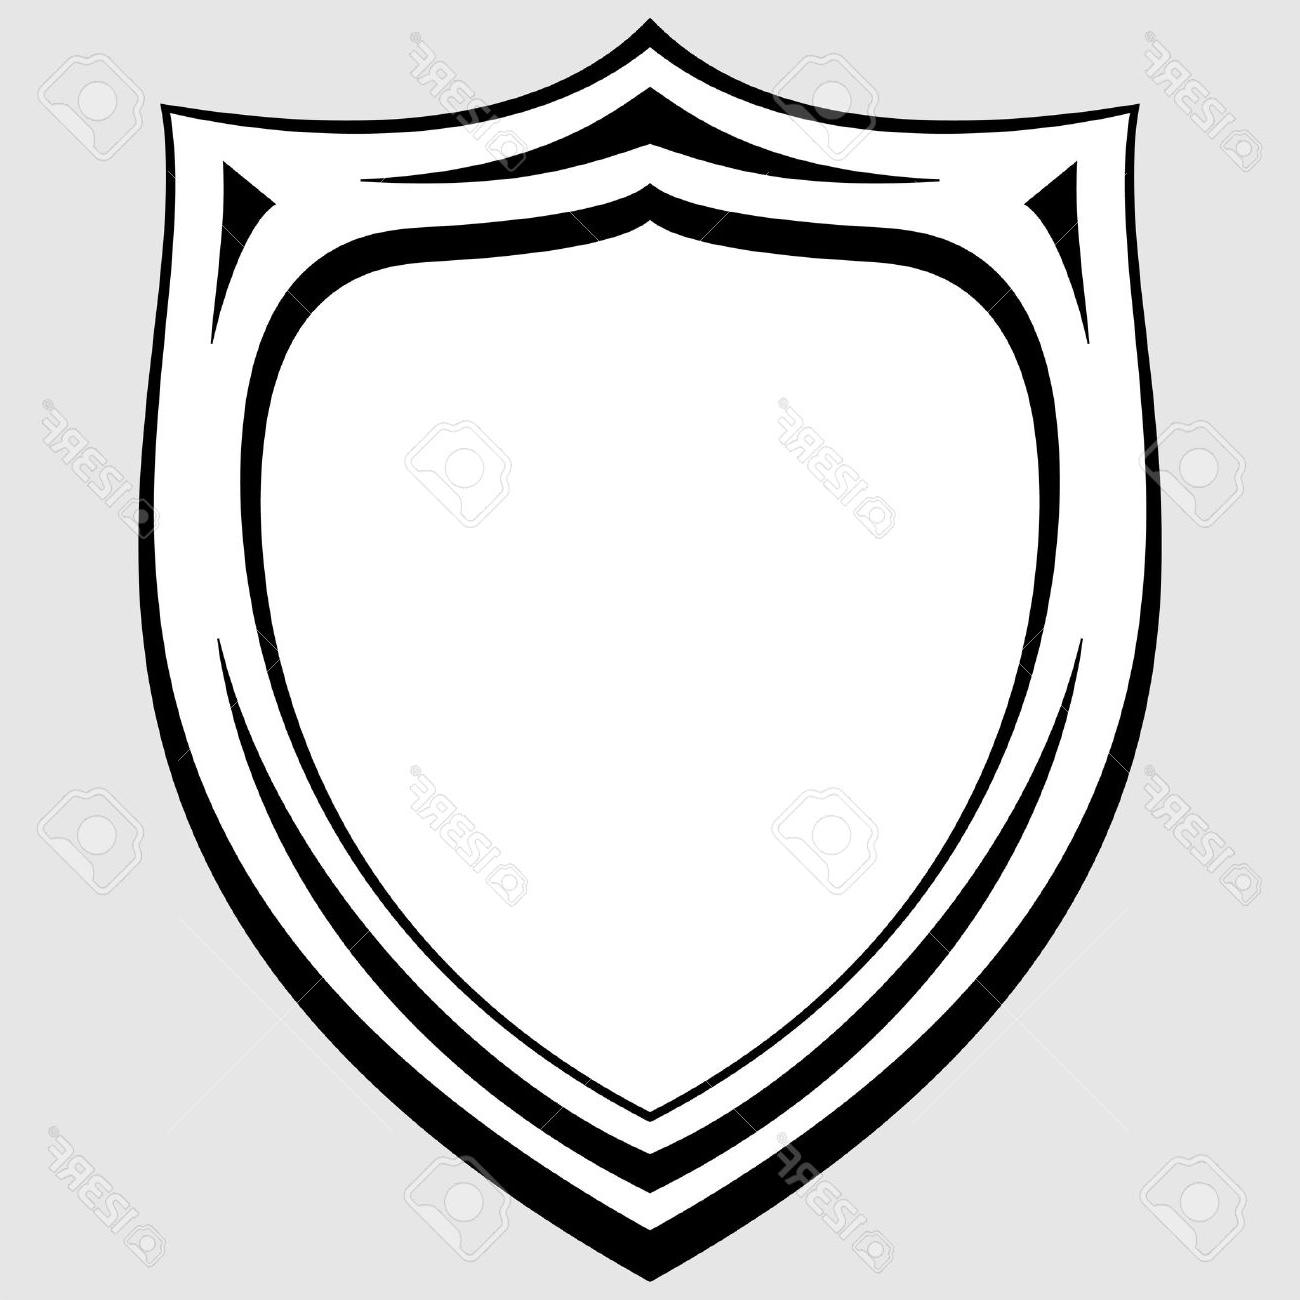 1300x1300 Unique Black And White Heraldic Badge Stock Vector Shield Outline Cdr